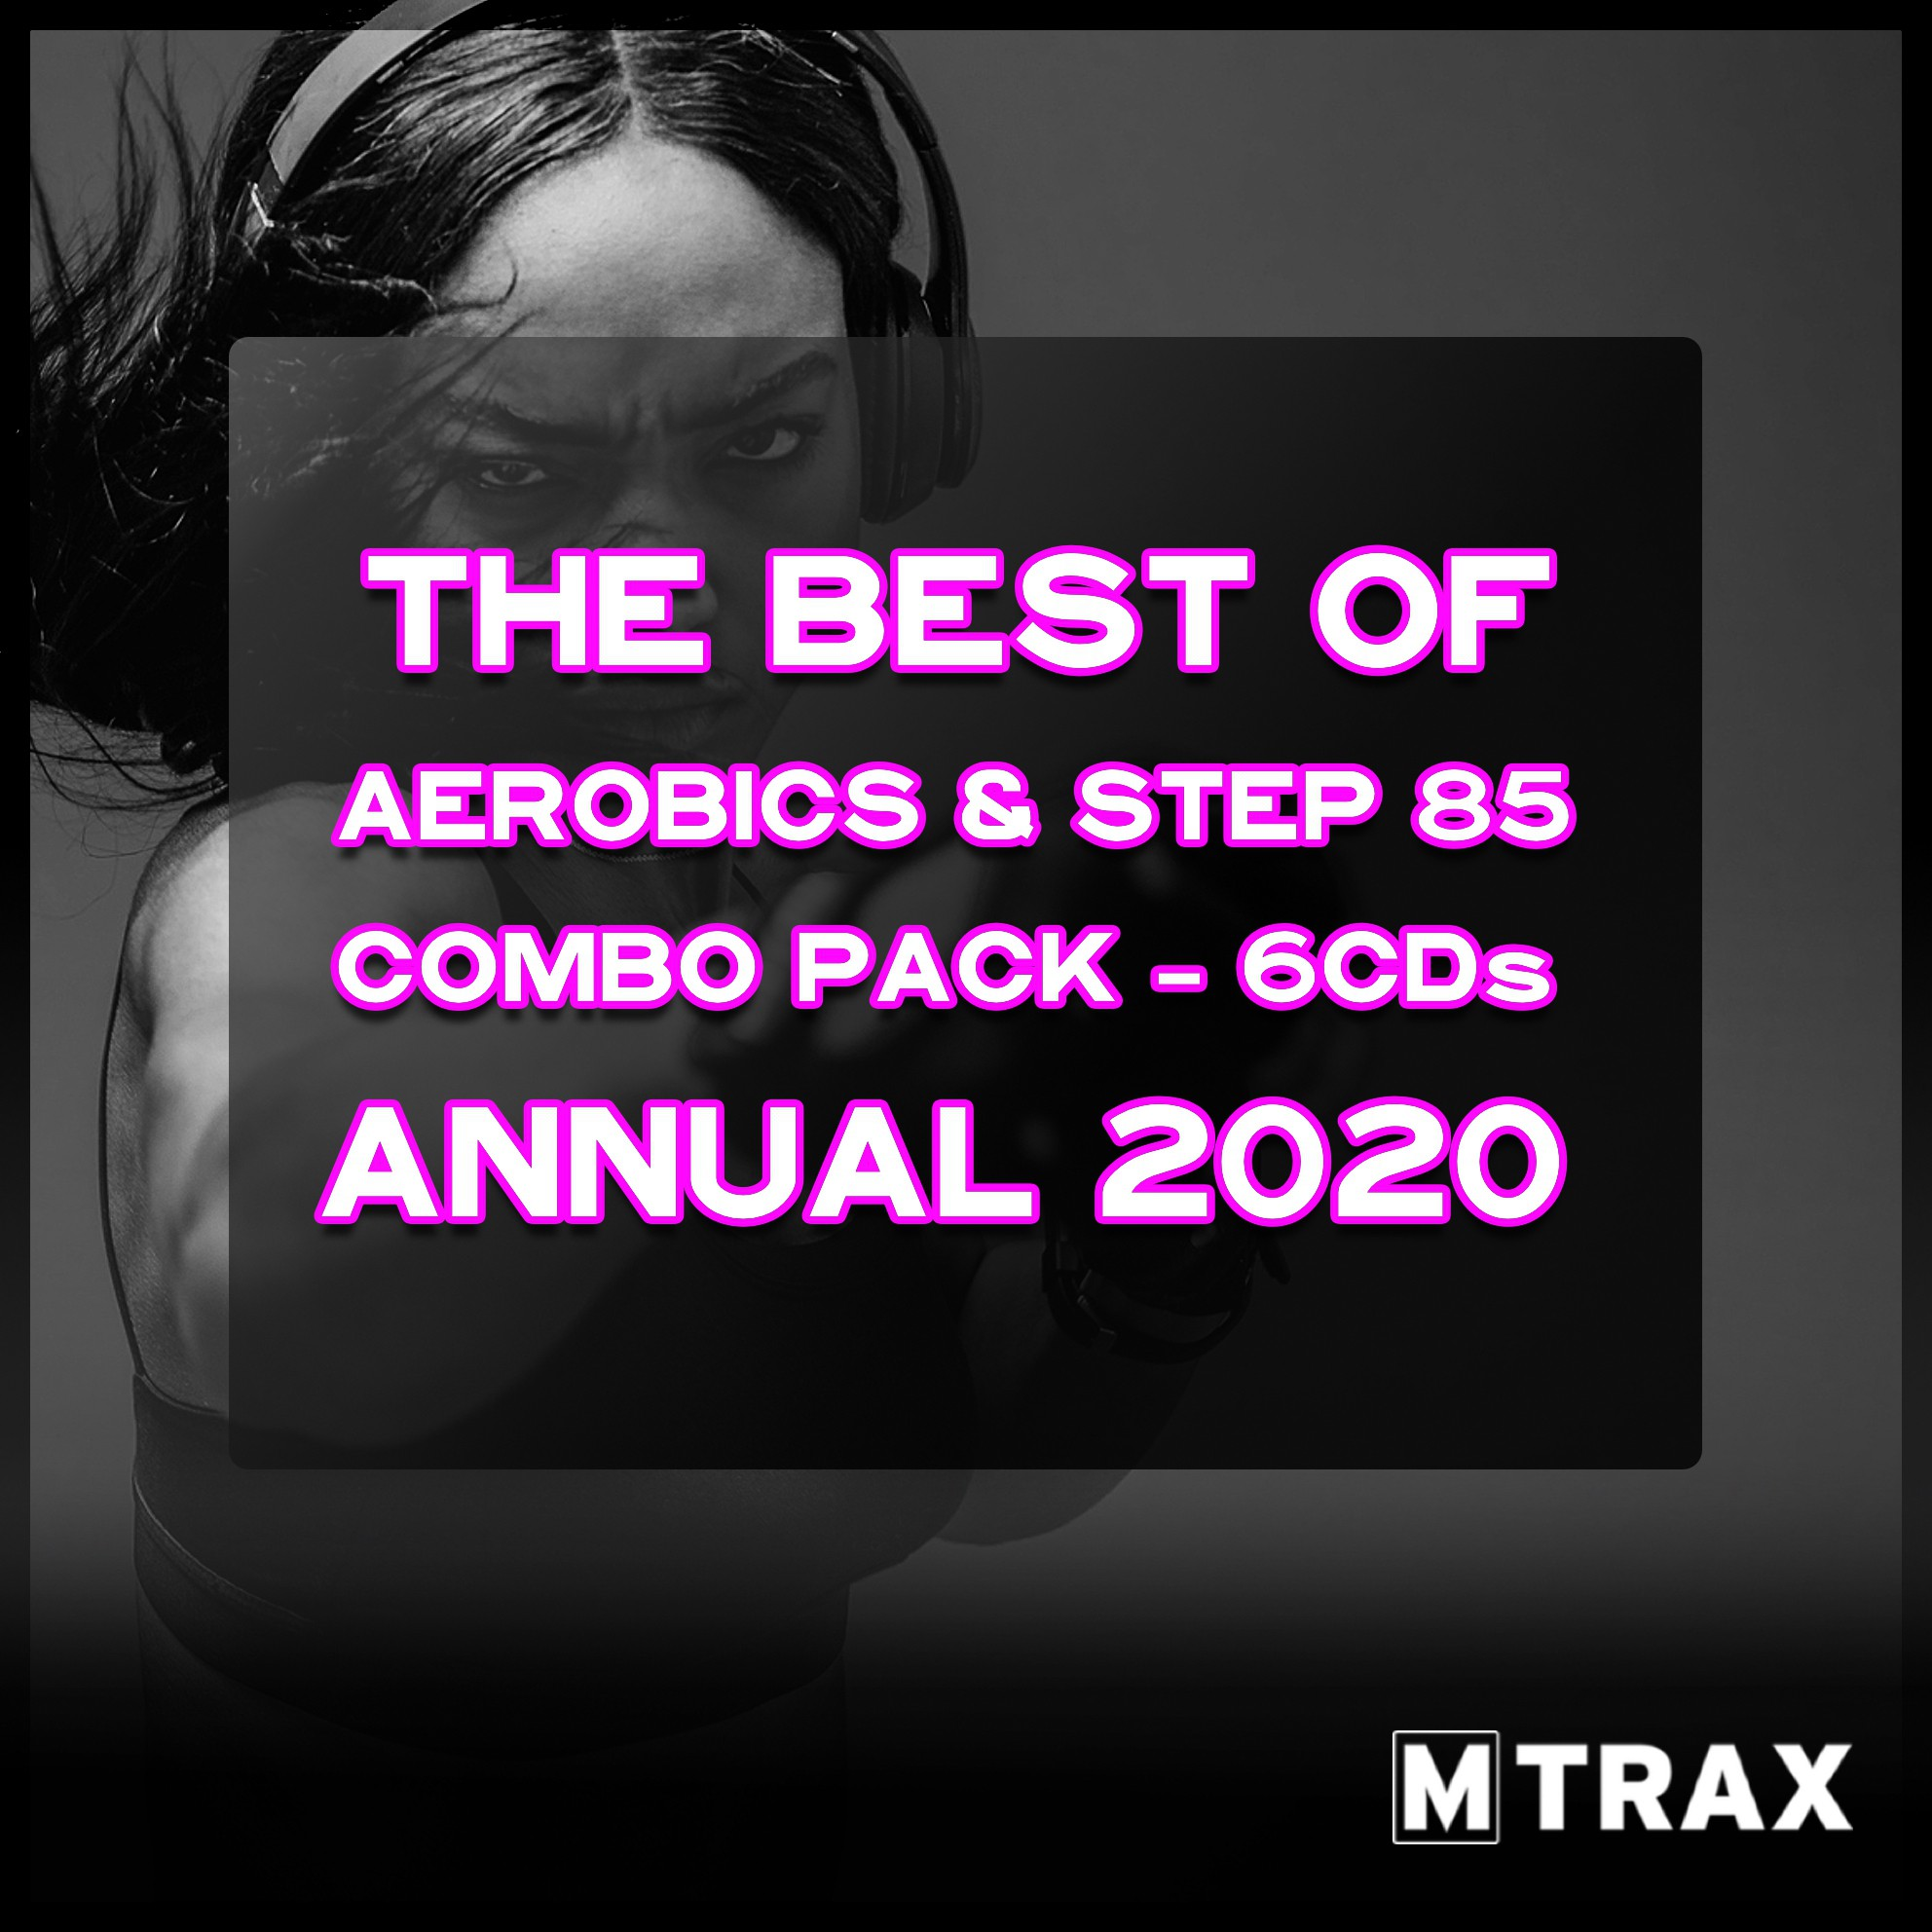 Aerobics & Step 85 Best of - Annual 2020 Combo Pack (6CDs)